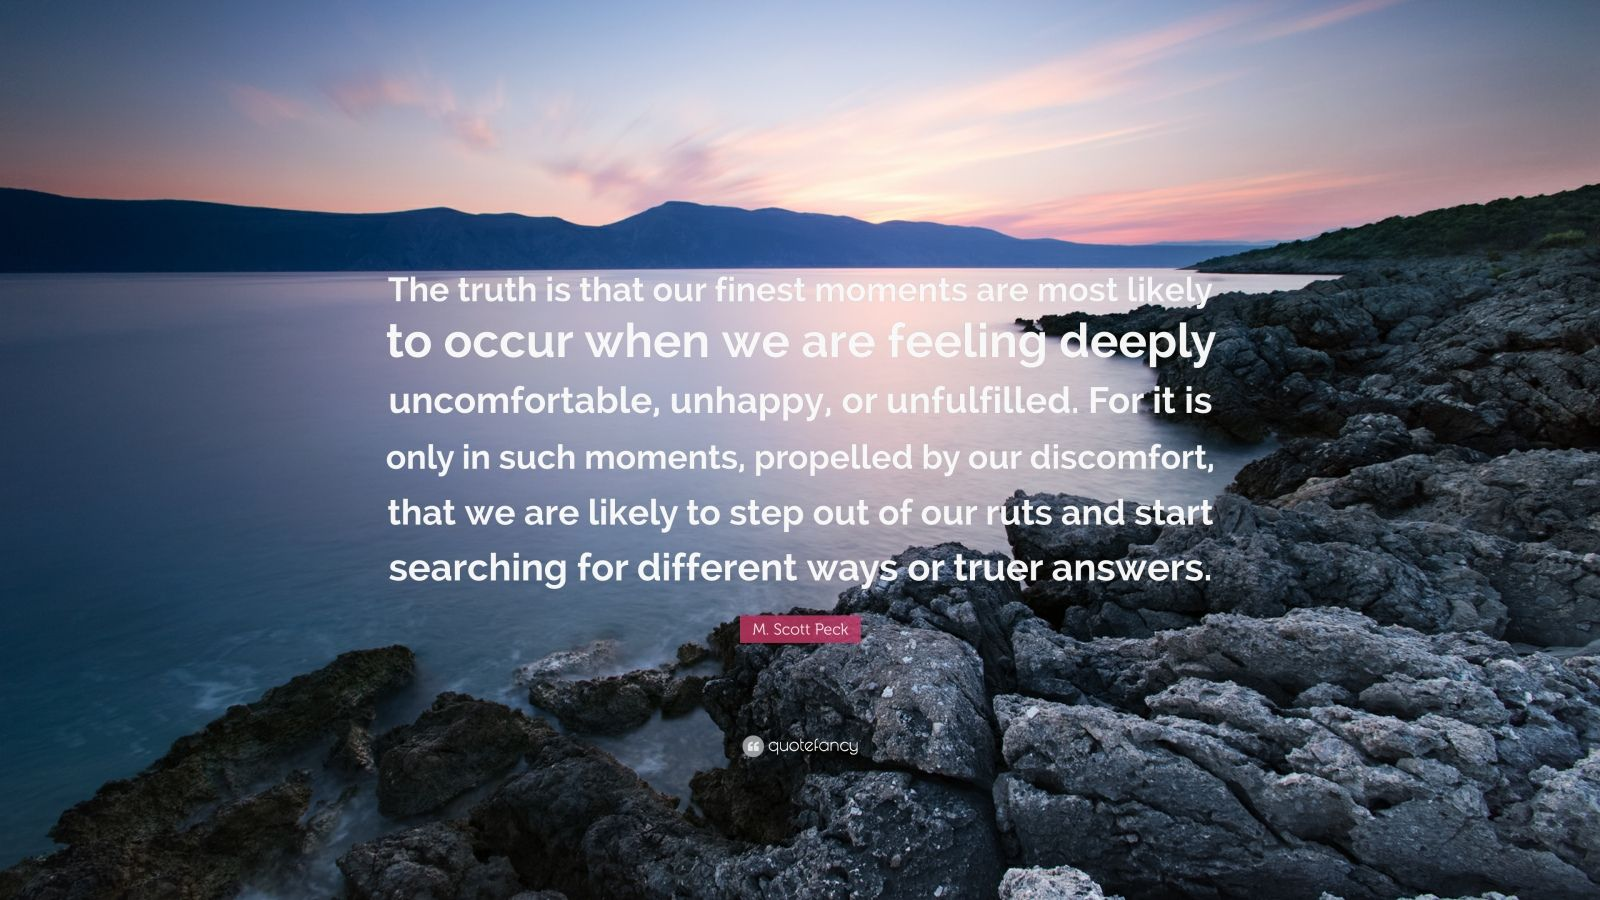 "M. Scott Peck Quote: ""The truth is that our finest moments are most likely to occur when we are feeling deeply uncomfortable, unhappy, or unfulfilled. For it is only in such moments, propelled by our discomfort, that we are likely to step out of our ruts and start searching for different ways or truer answers."""